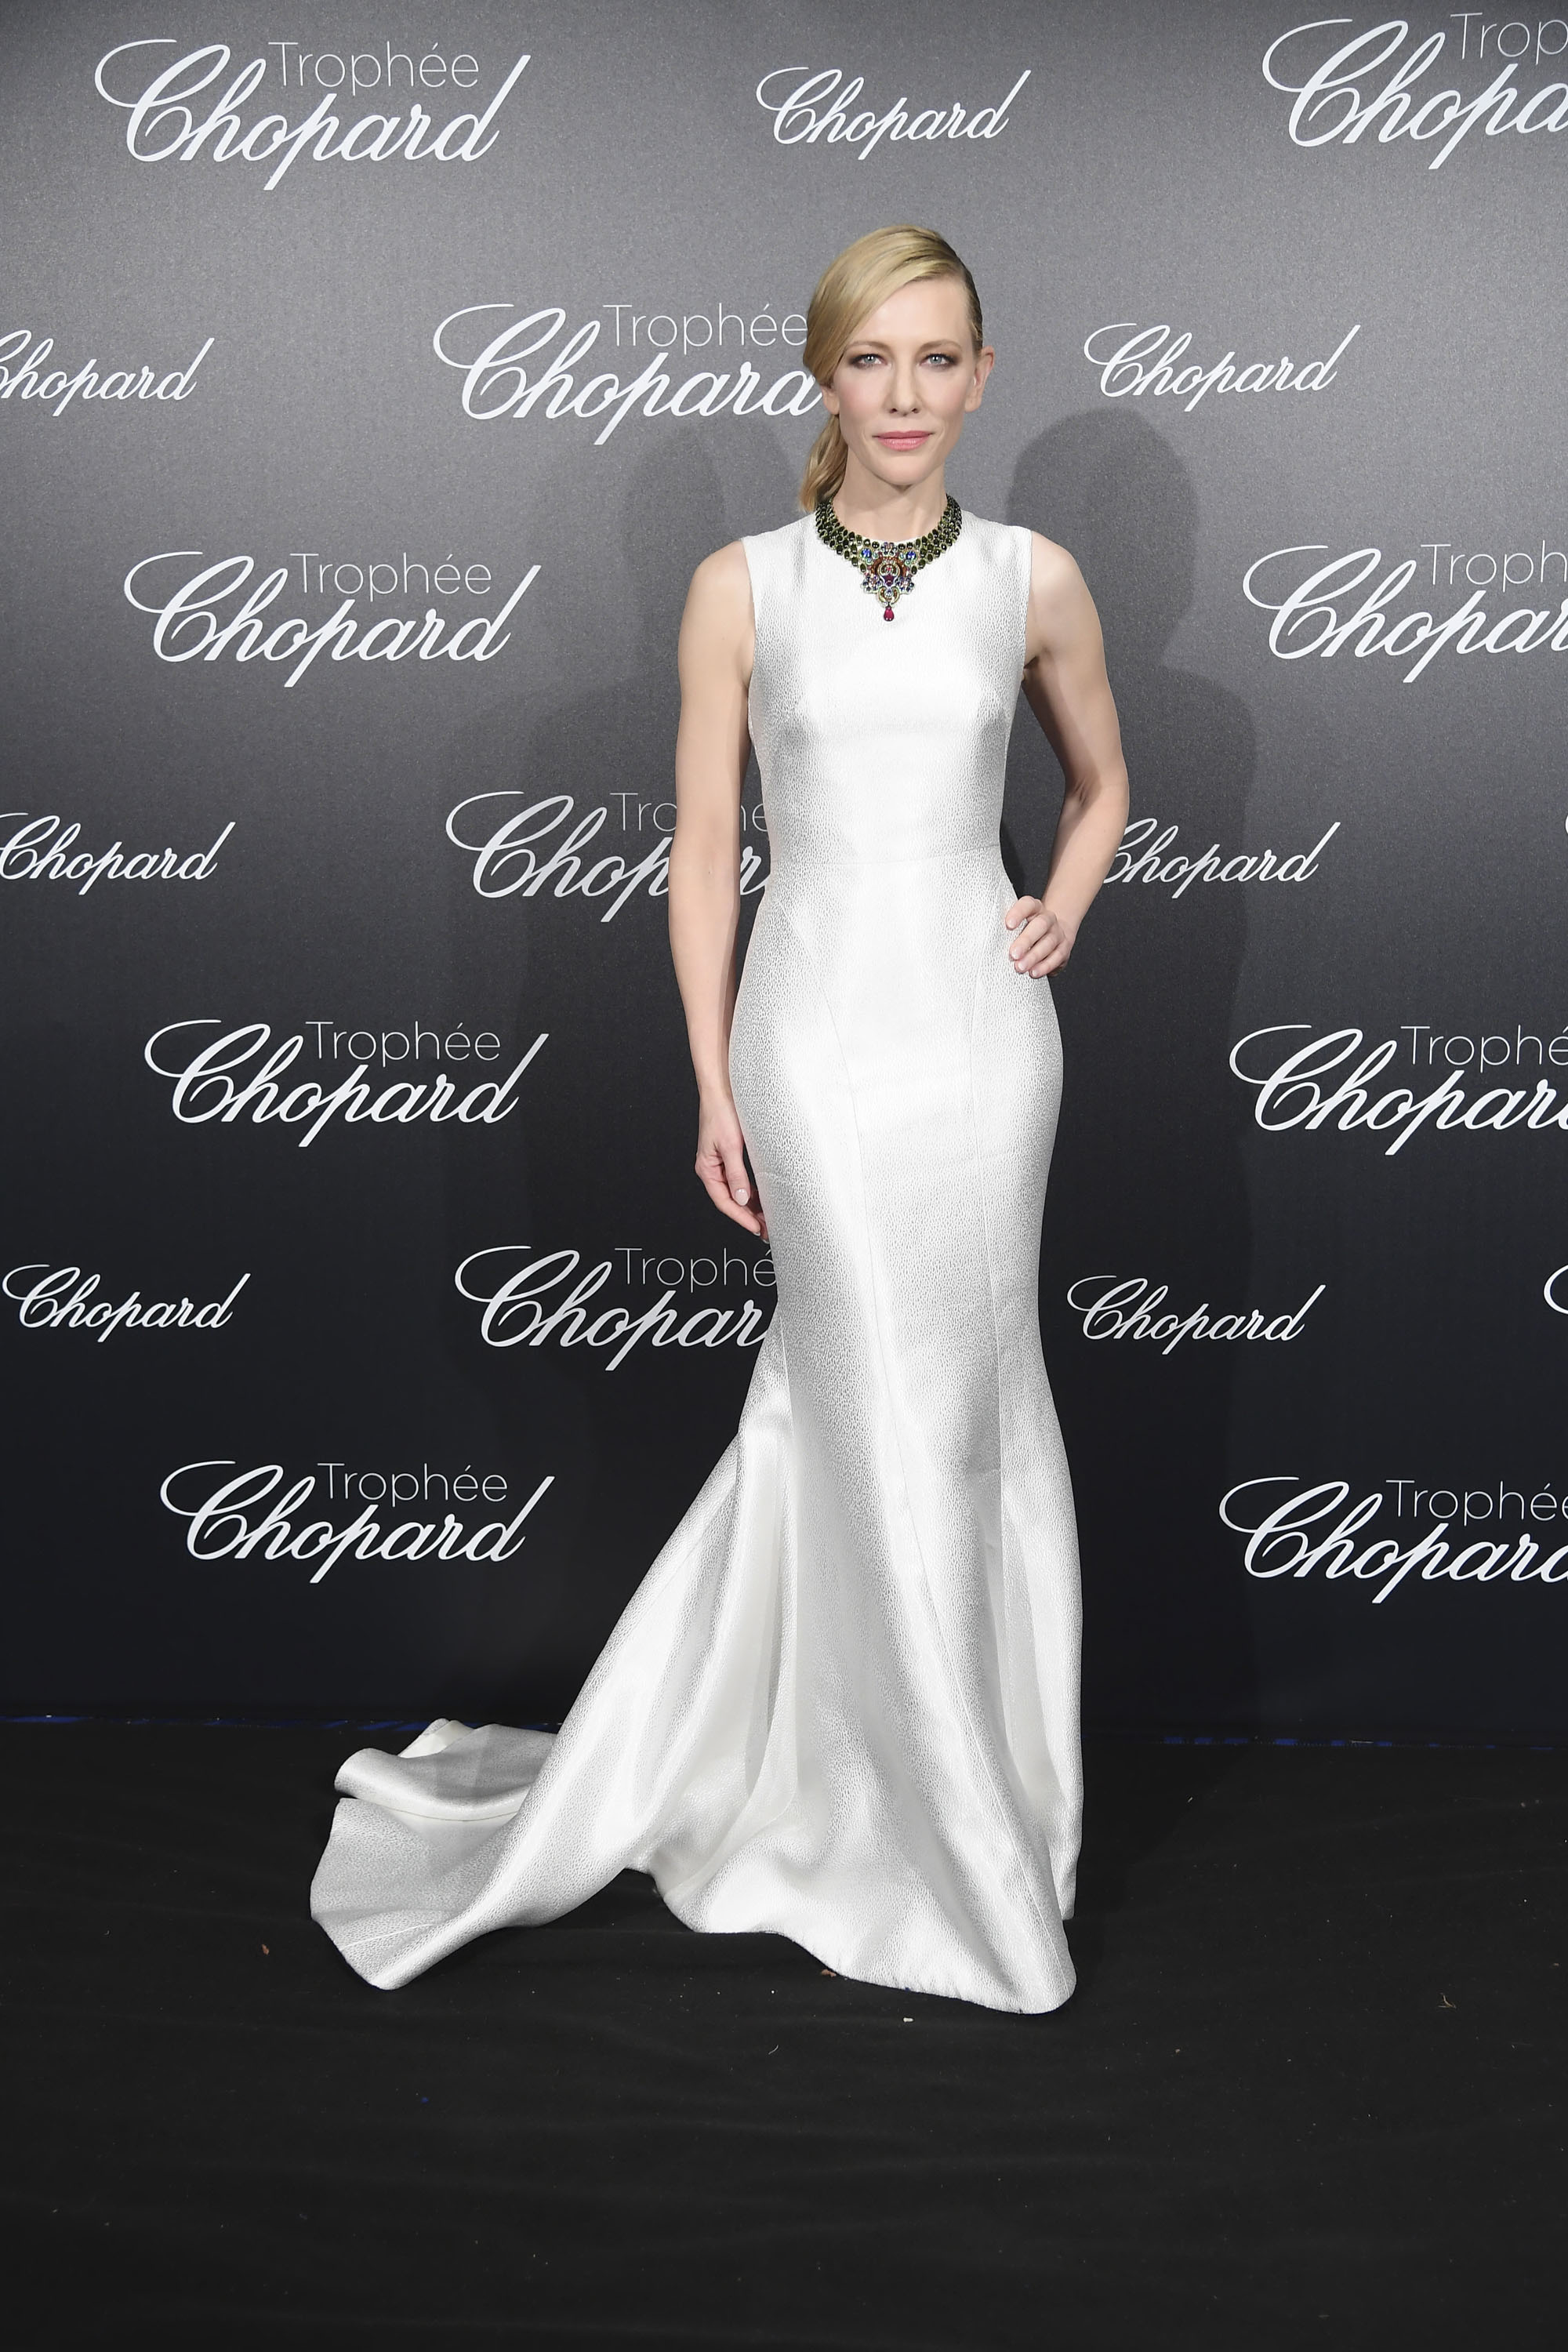 Cate Blanchett wore a Giorgio Armani gown during the Cannes Film ...